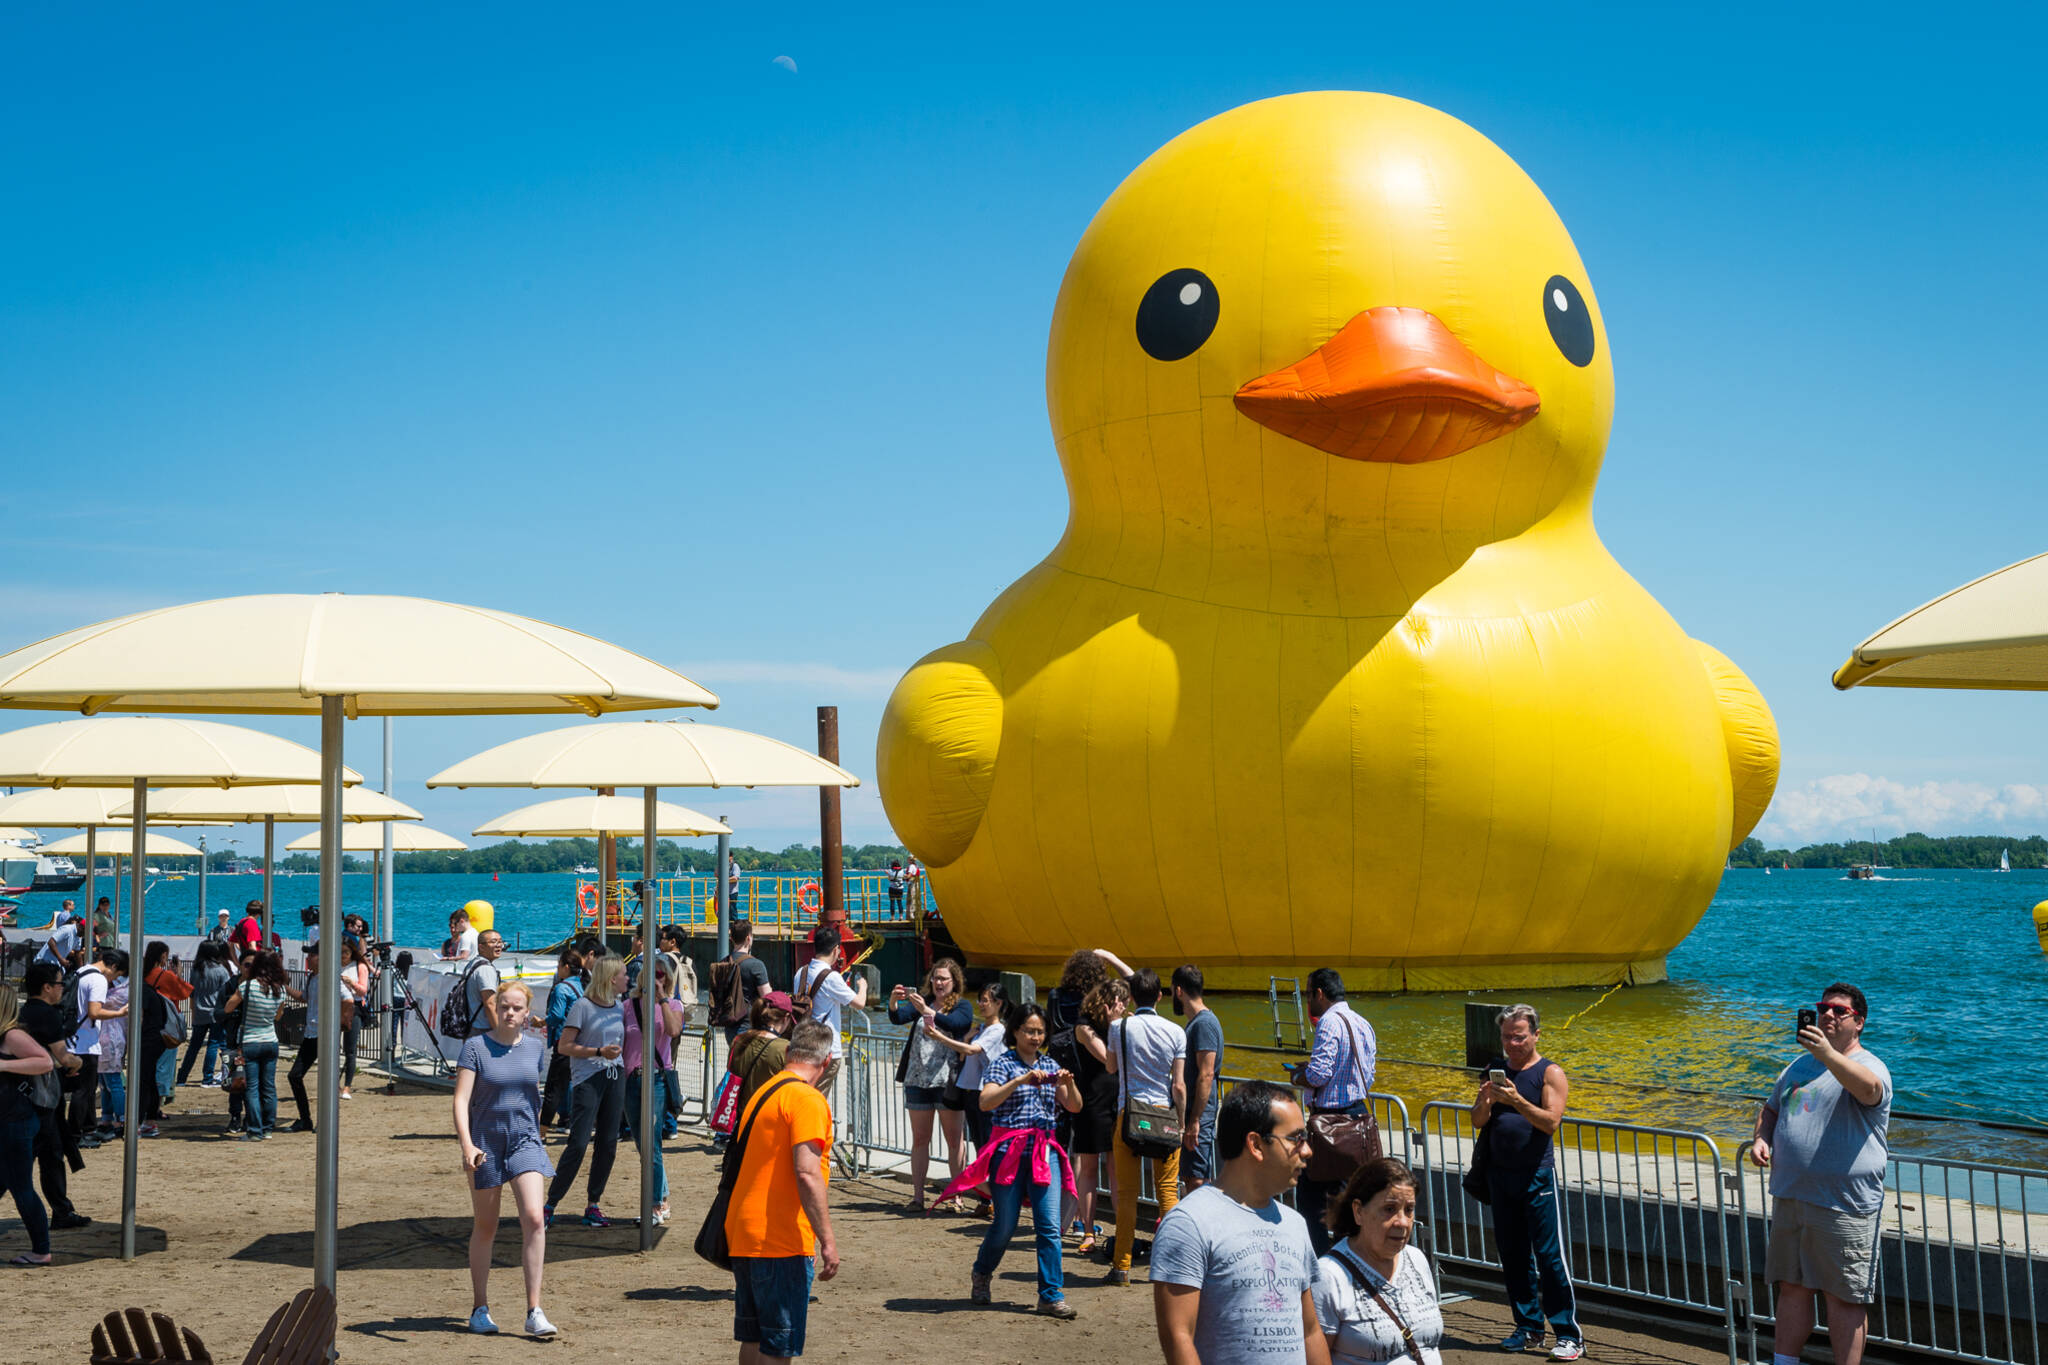 worlds biggest rubber duck